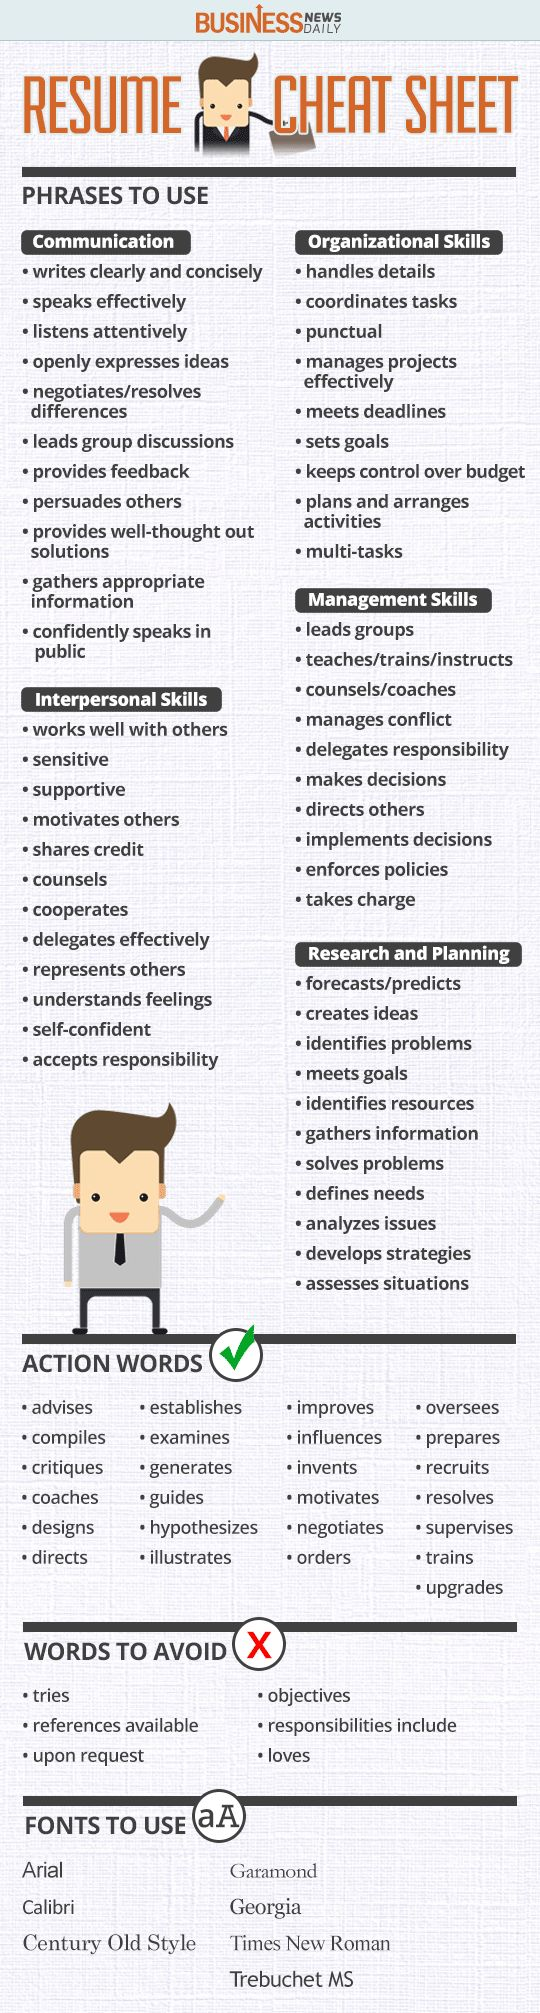 Opposenewapstandardsus  Outstanding  Ideas About Resume On Pinterest  Cv Format Resume  With Lovable Resume Cheat Sheet Infographic Andrews Almost Done With A Complete Unit On Employment Which With Comely Resume Indesign Template Also Proper Font For Resume In Addition Medical Esthetician Resume And Tom Brady College Resume As Well As Customer Service Description For Resume Additionally Architects Resume From Pinterestcom With Opposenewapstandardsus  Lovable  Ideas About Resume On Pinterest  Cv Format Resume  With Comely Resume Cheat Sheet Infographic Andrews Almost Done With A Complete Unit On Employment Which And Outstanding Resume Indesign Template Also Proper Font For Resume In Addition Medical Esthetician Resume From Pinterestcom